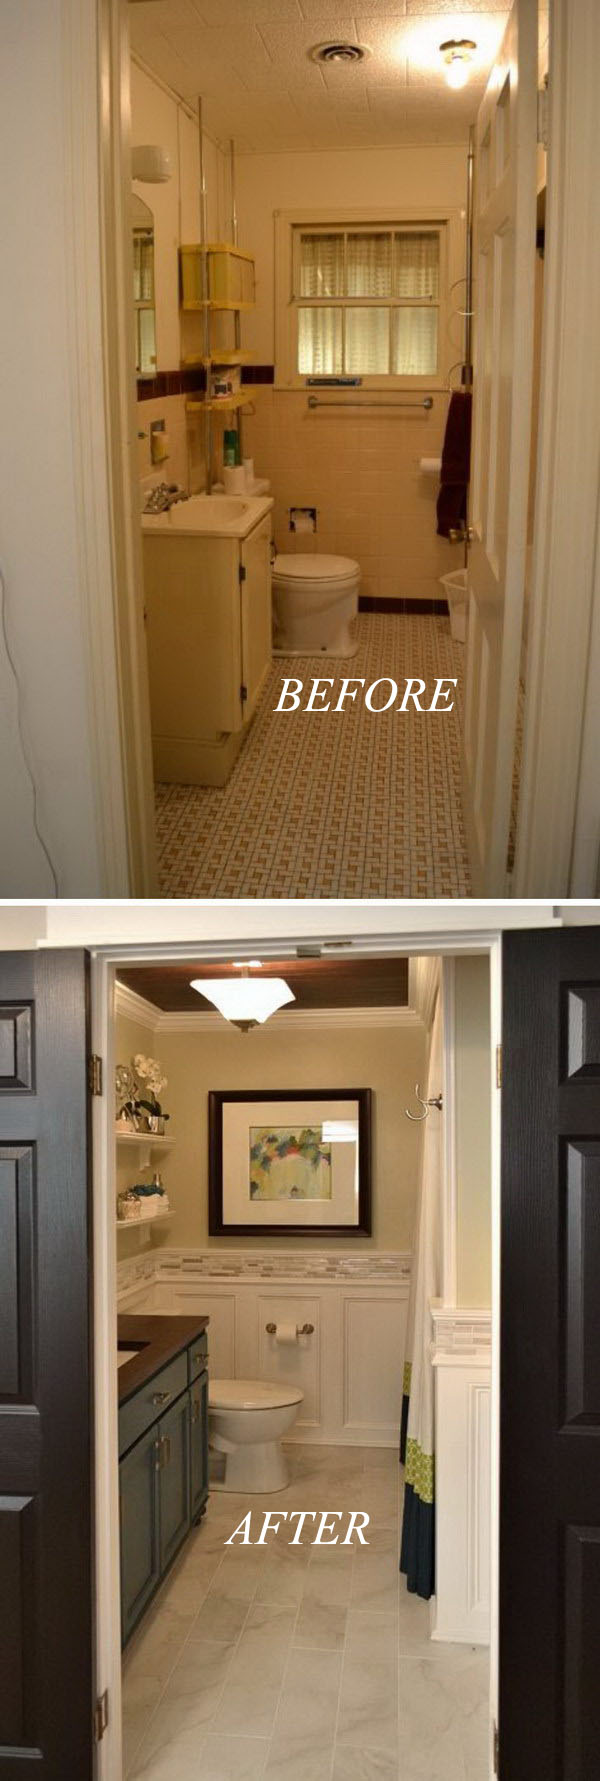 33 inspirational small bathroom remodel before and after for Bath remodel for small bathrooms